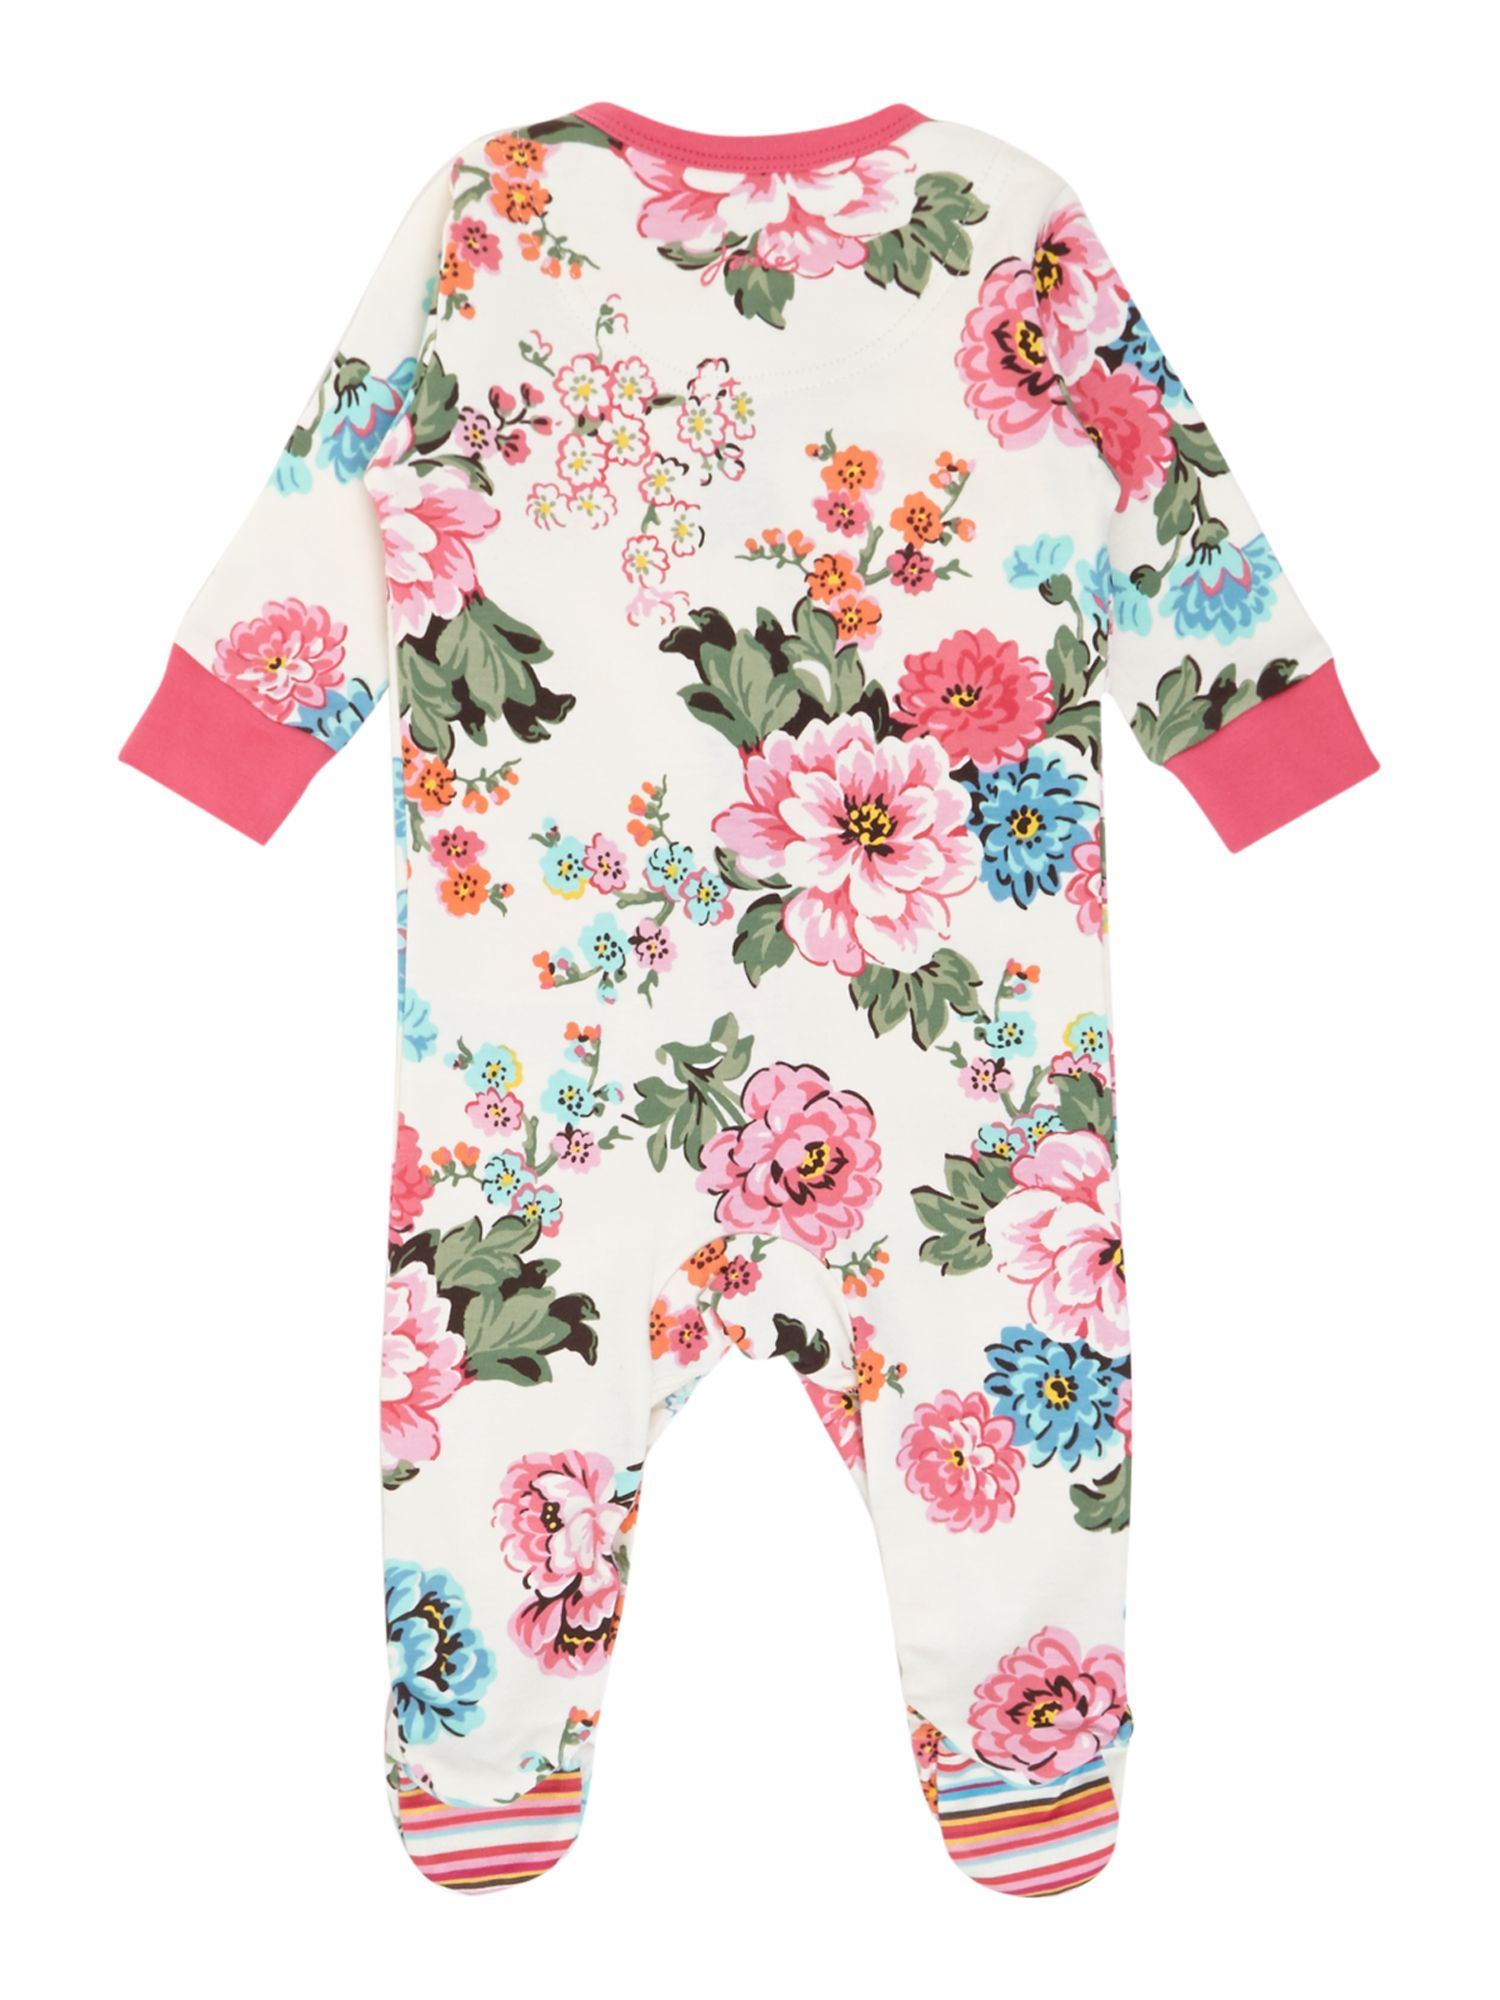 Baby girls floral print sleepsuit